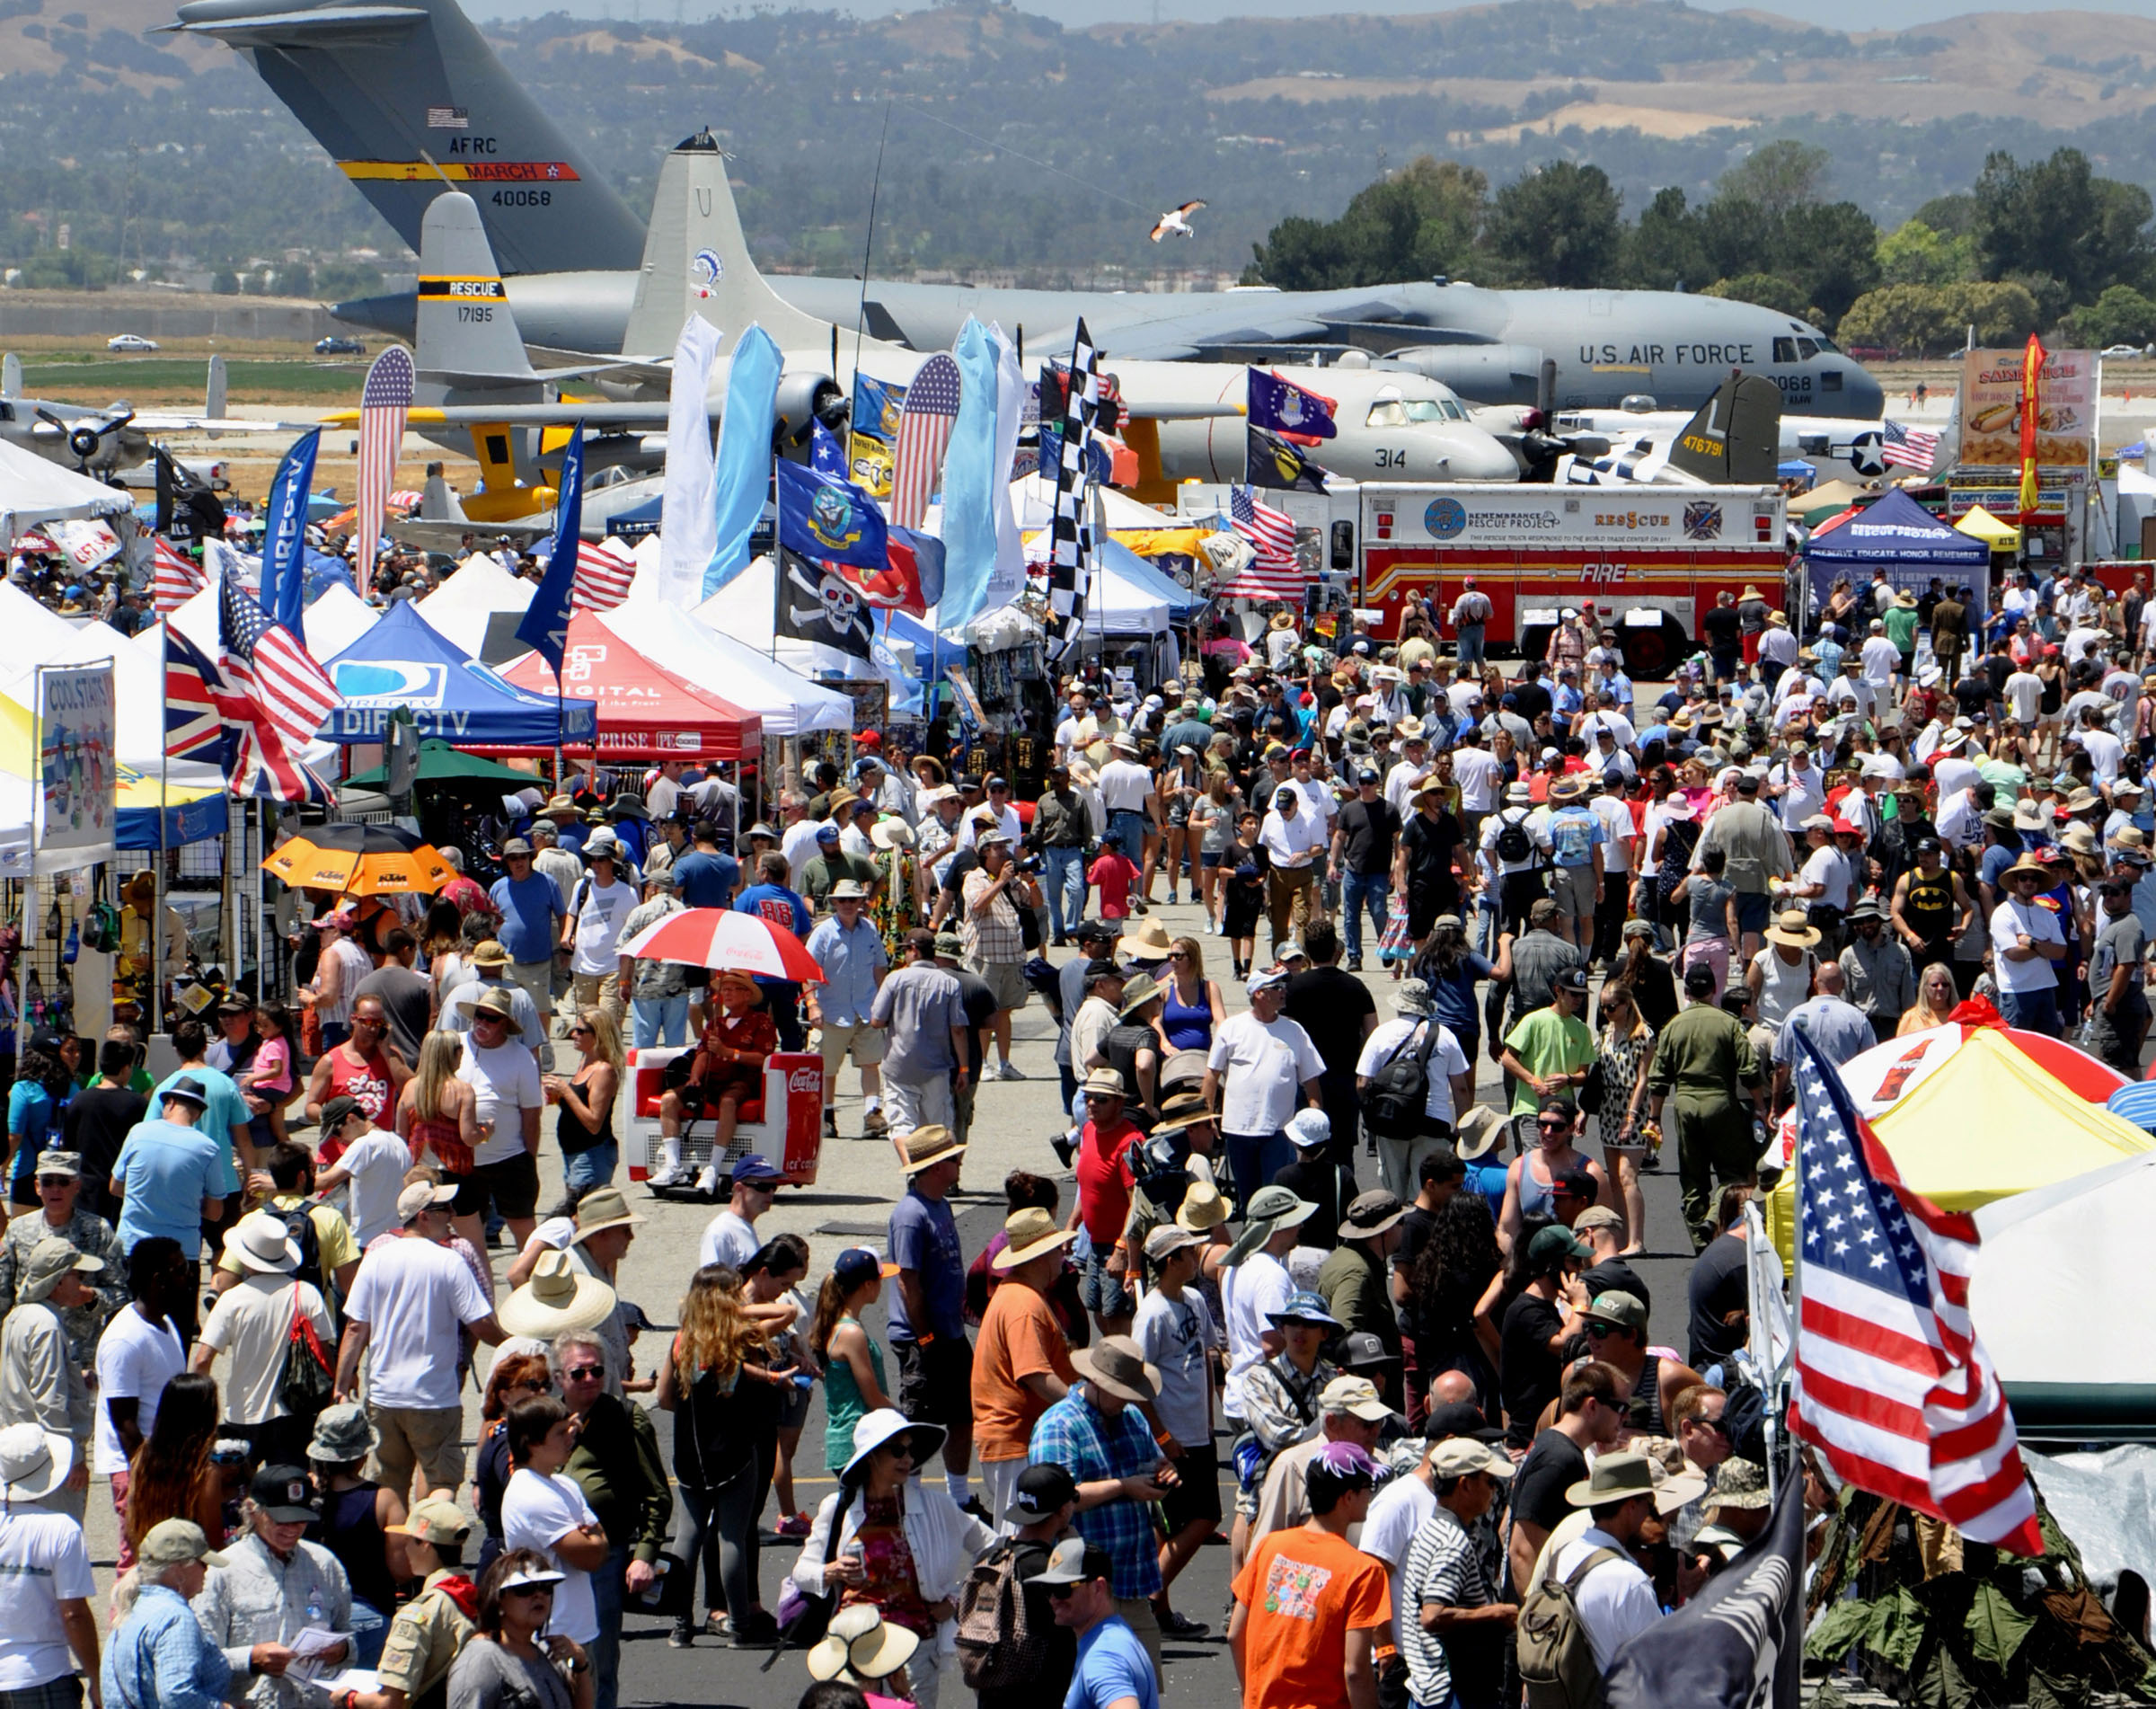 The teeming crowd at a previous Planes of Fame Air Show. (photo via Planes of Fame Air Museum)